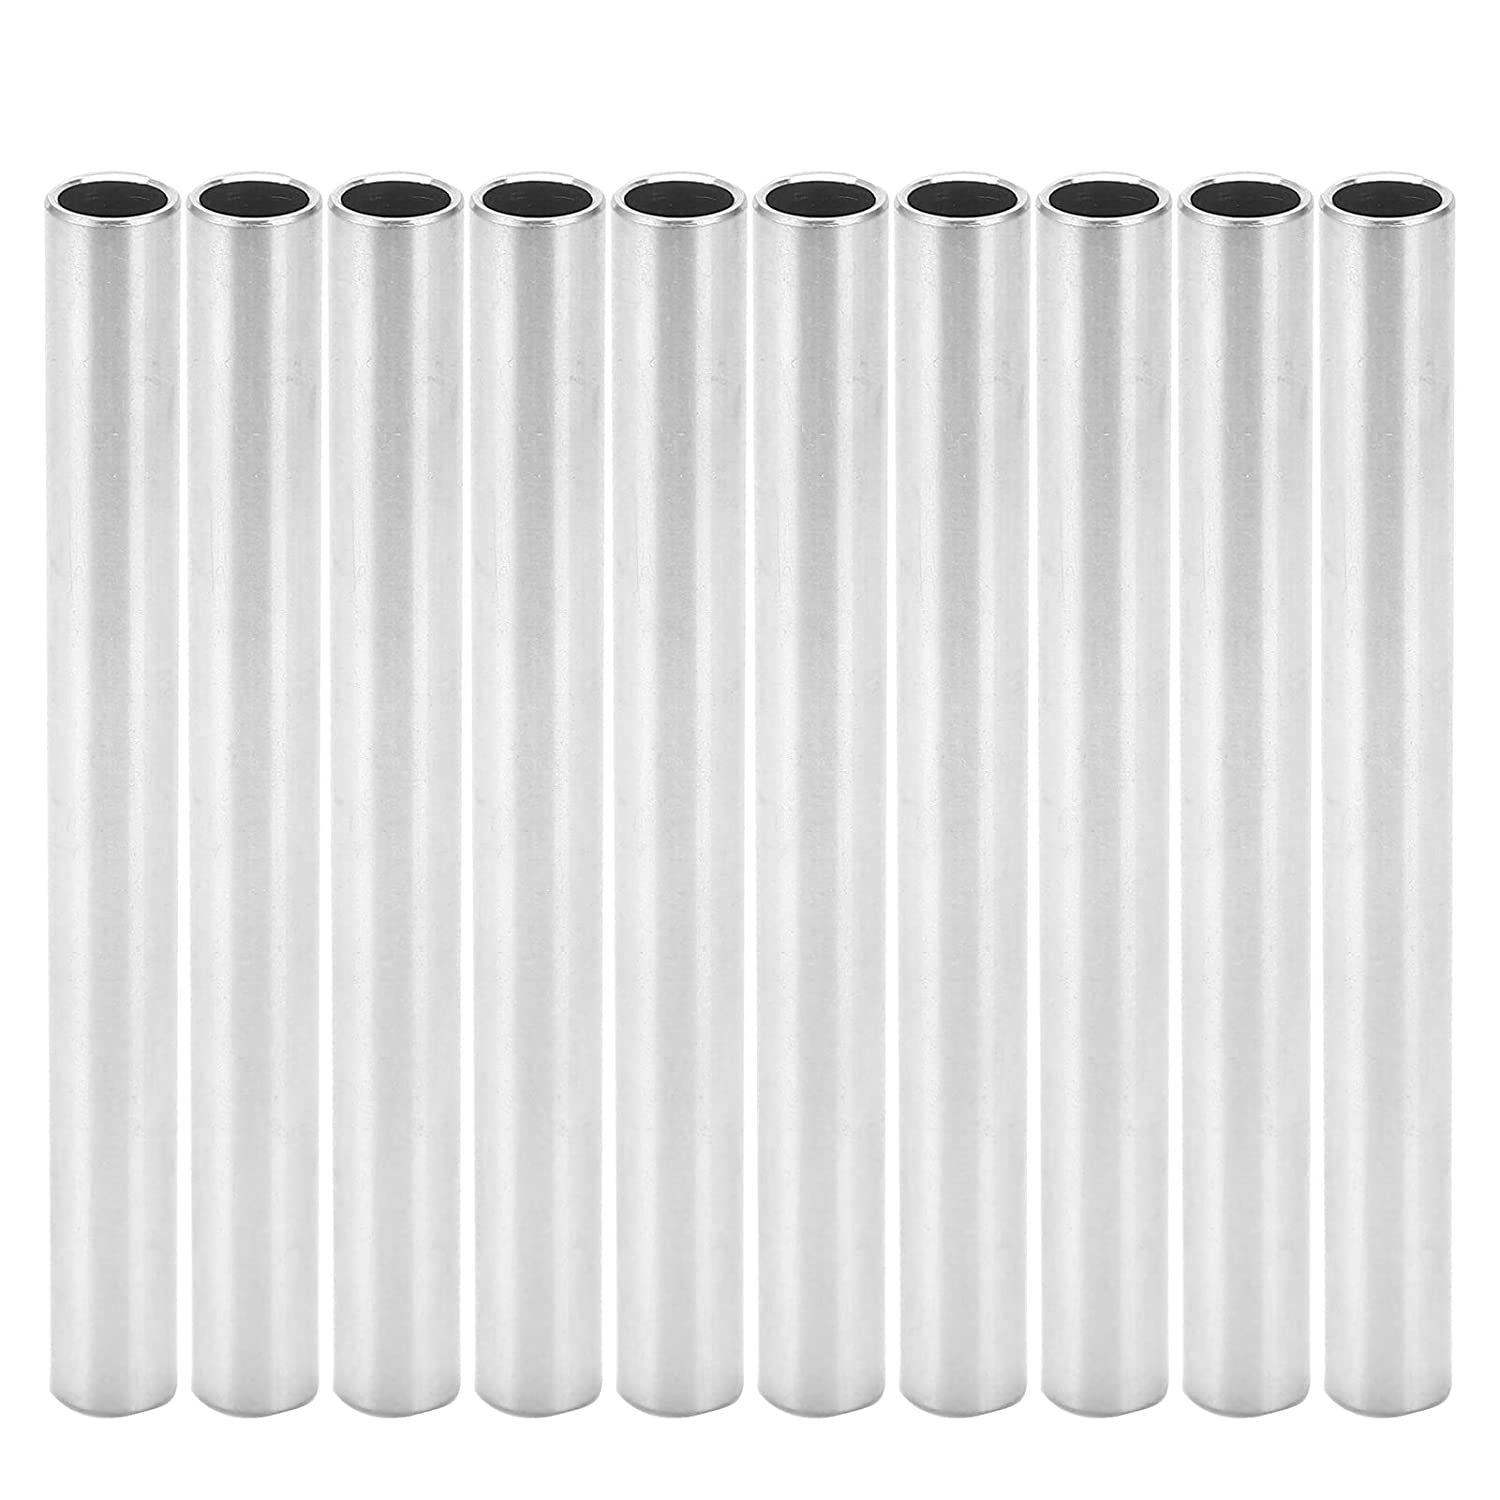 Cheap mail order shopping Aluminum Tube 10 free shipping Pieces of Fittings Shaft 61